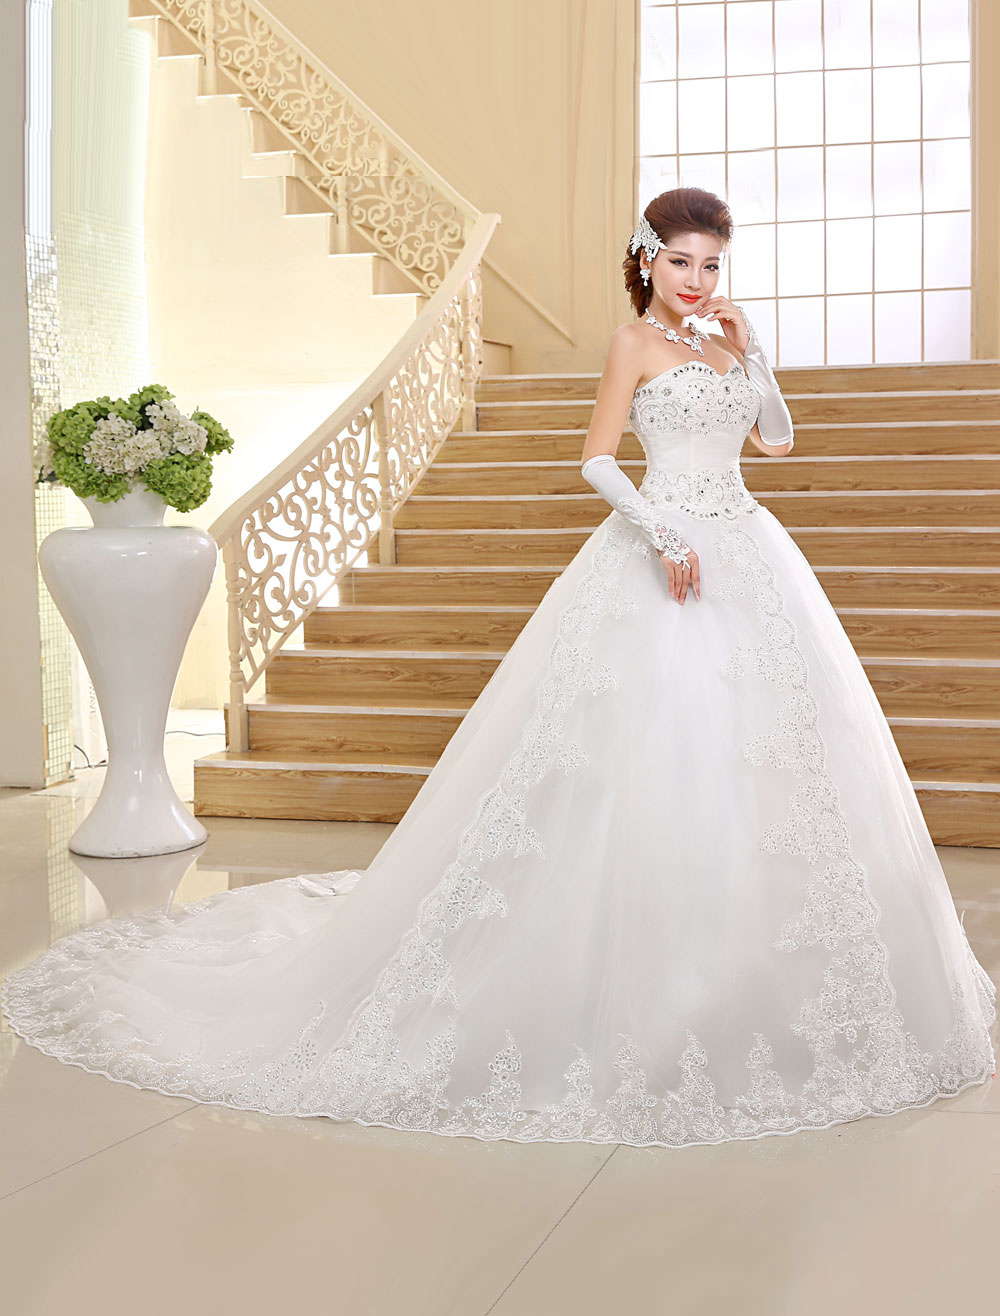 Buy Princess Wedding Dresses Strapless Ball Gown Bridal Dress Lace Applique Sweetheart Neckline Sequins Beading Ivory Long Train Bridal Gown for $159.99 in Milanoo store